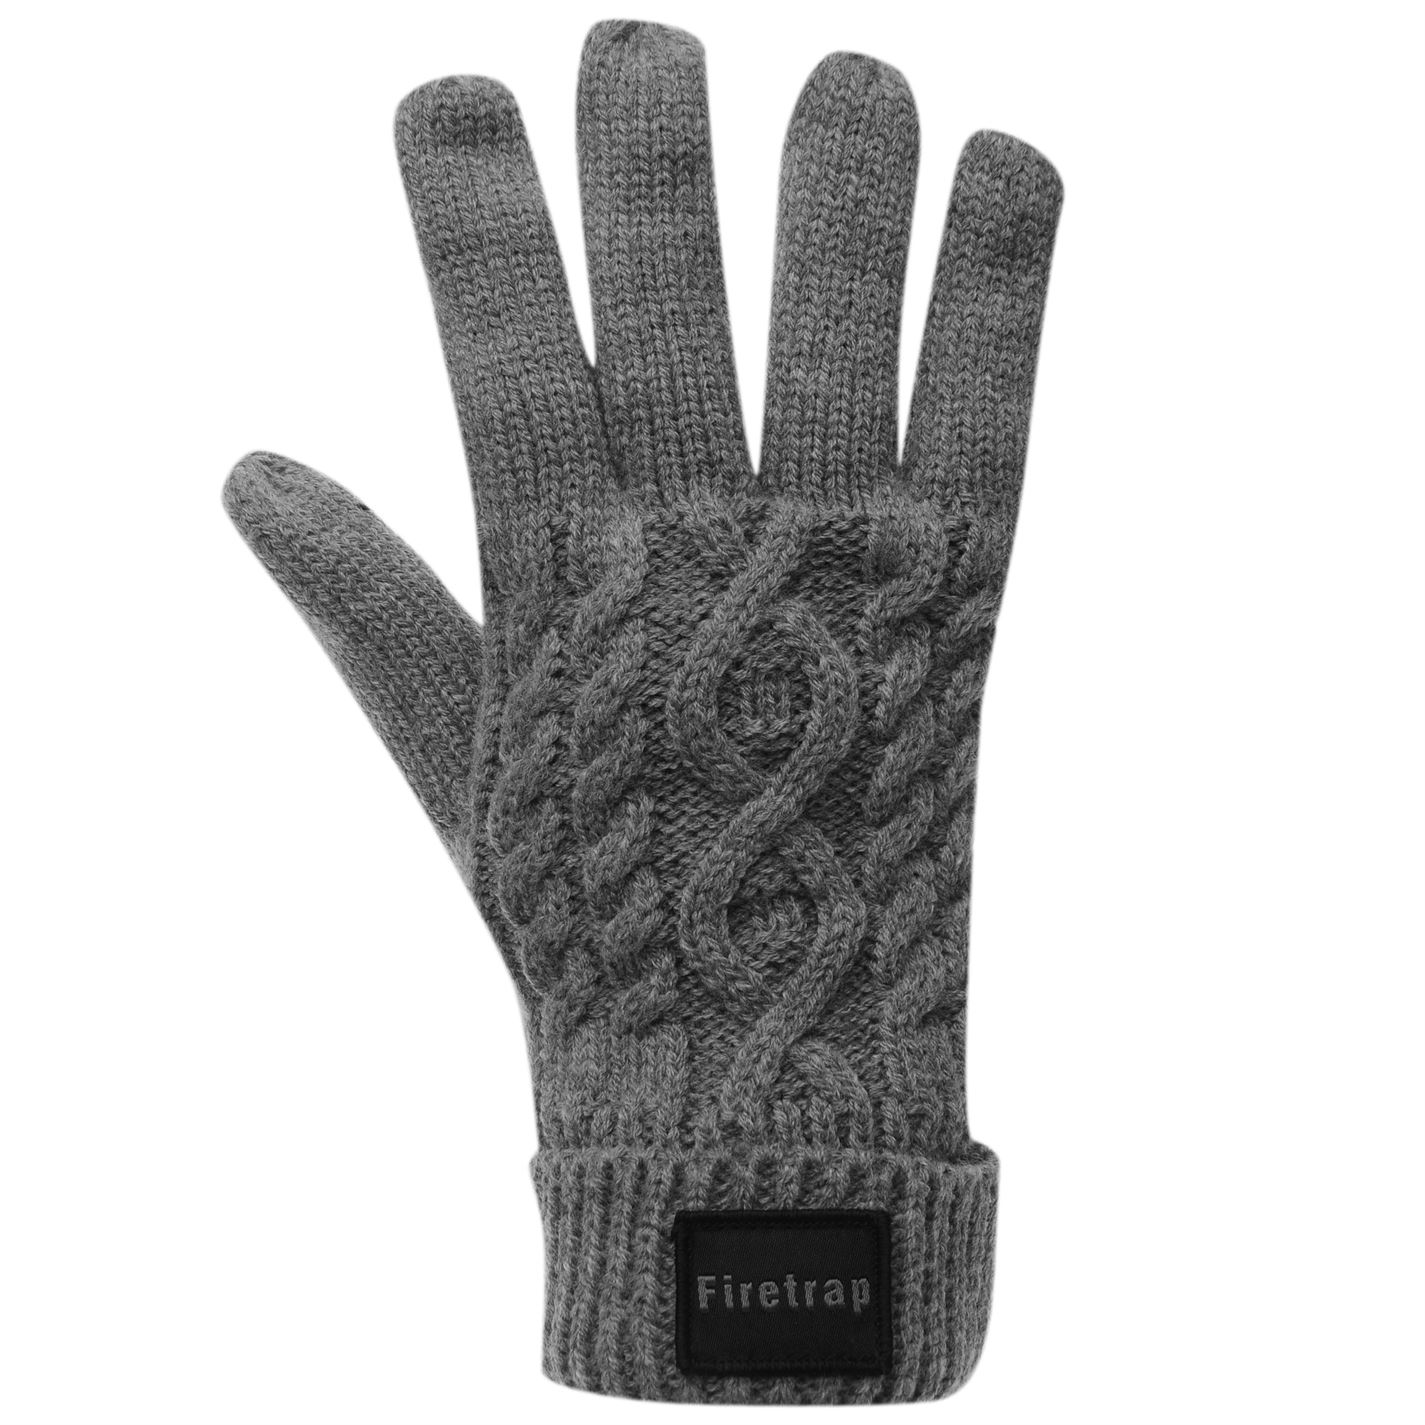 Mens Firetrap Cable Knit Gloves Knitted Winter New